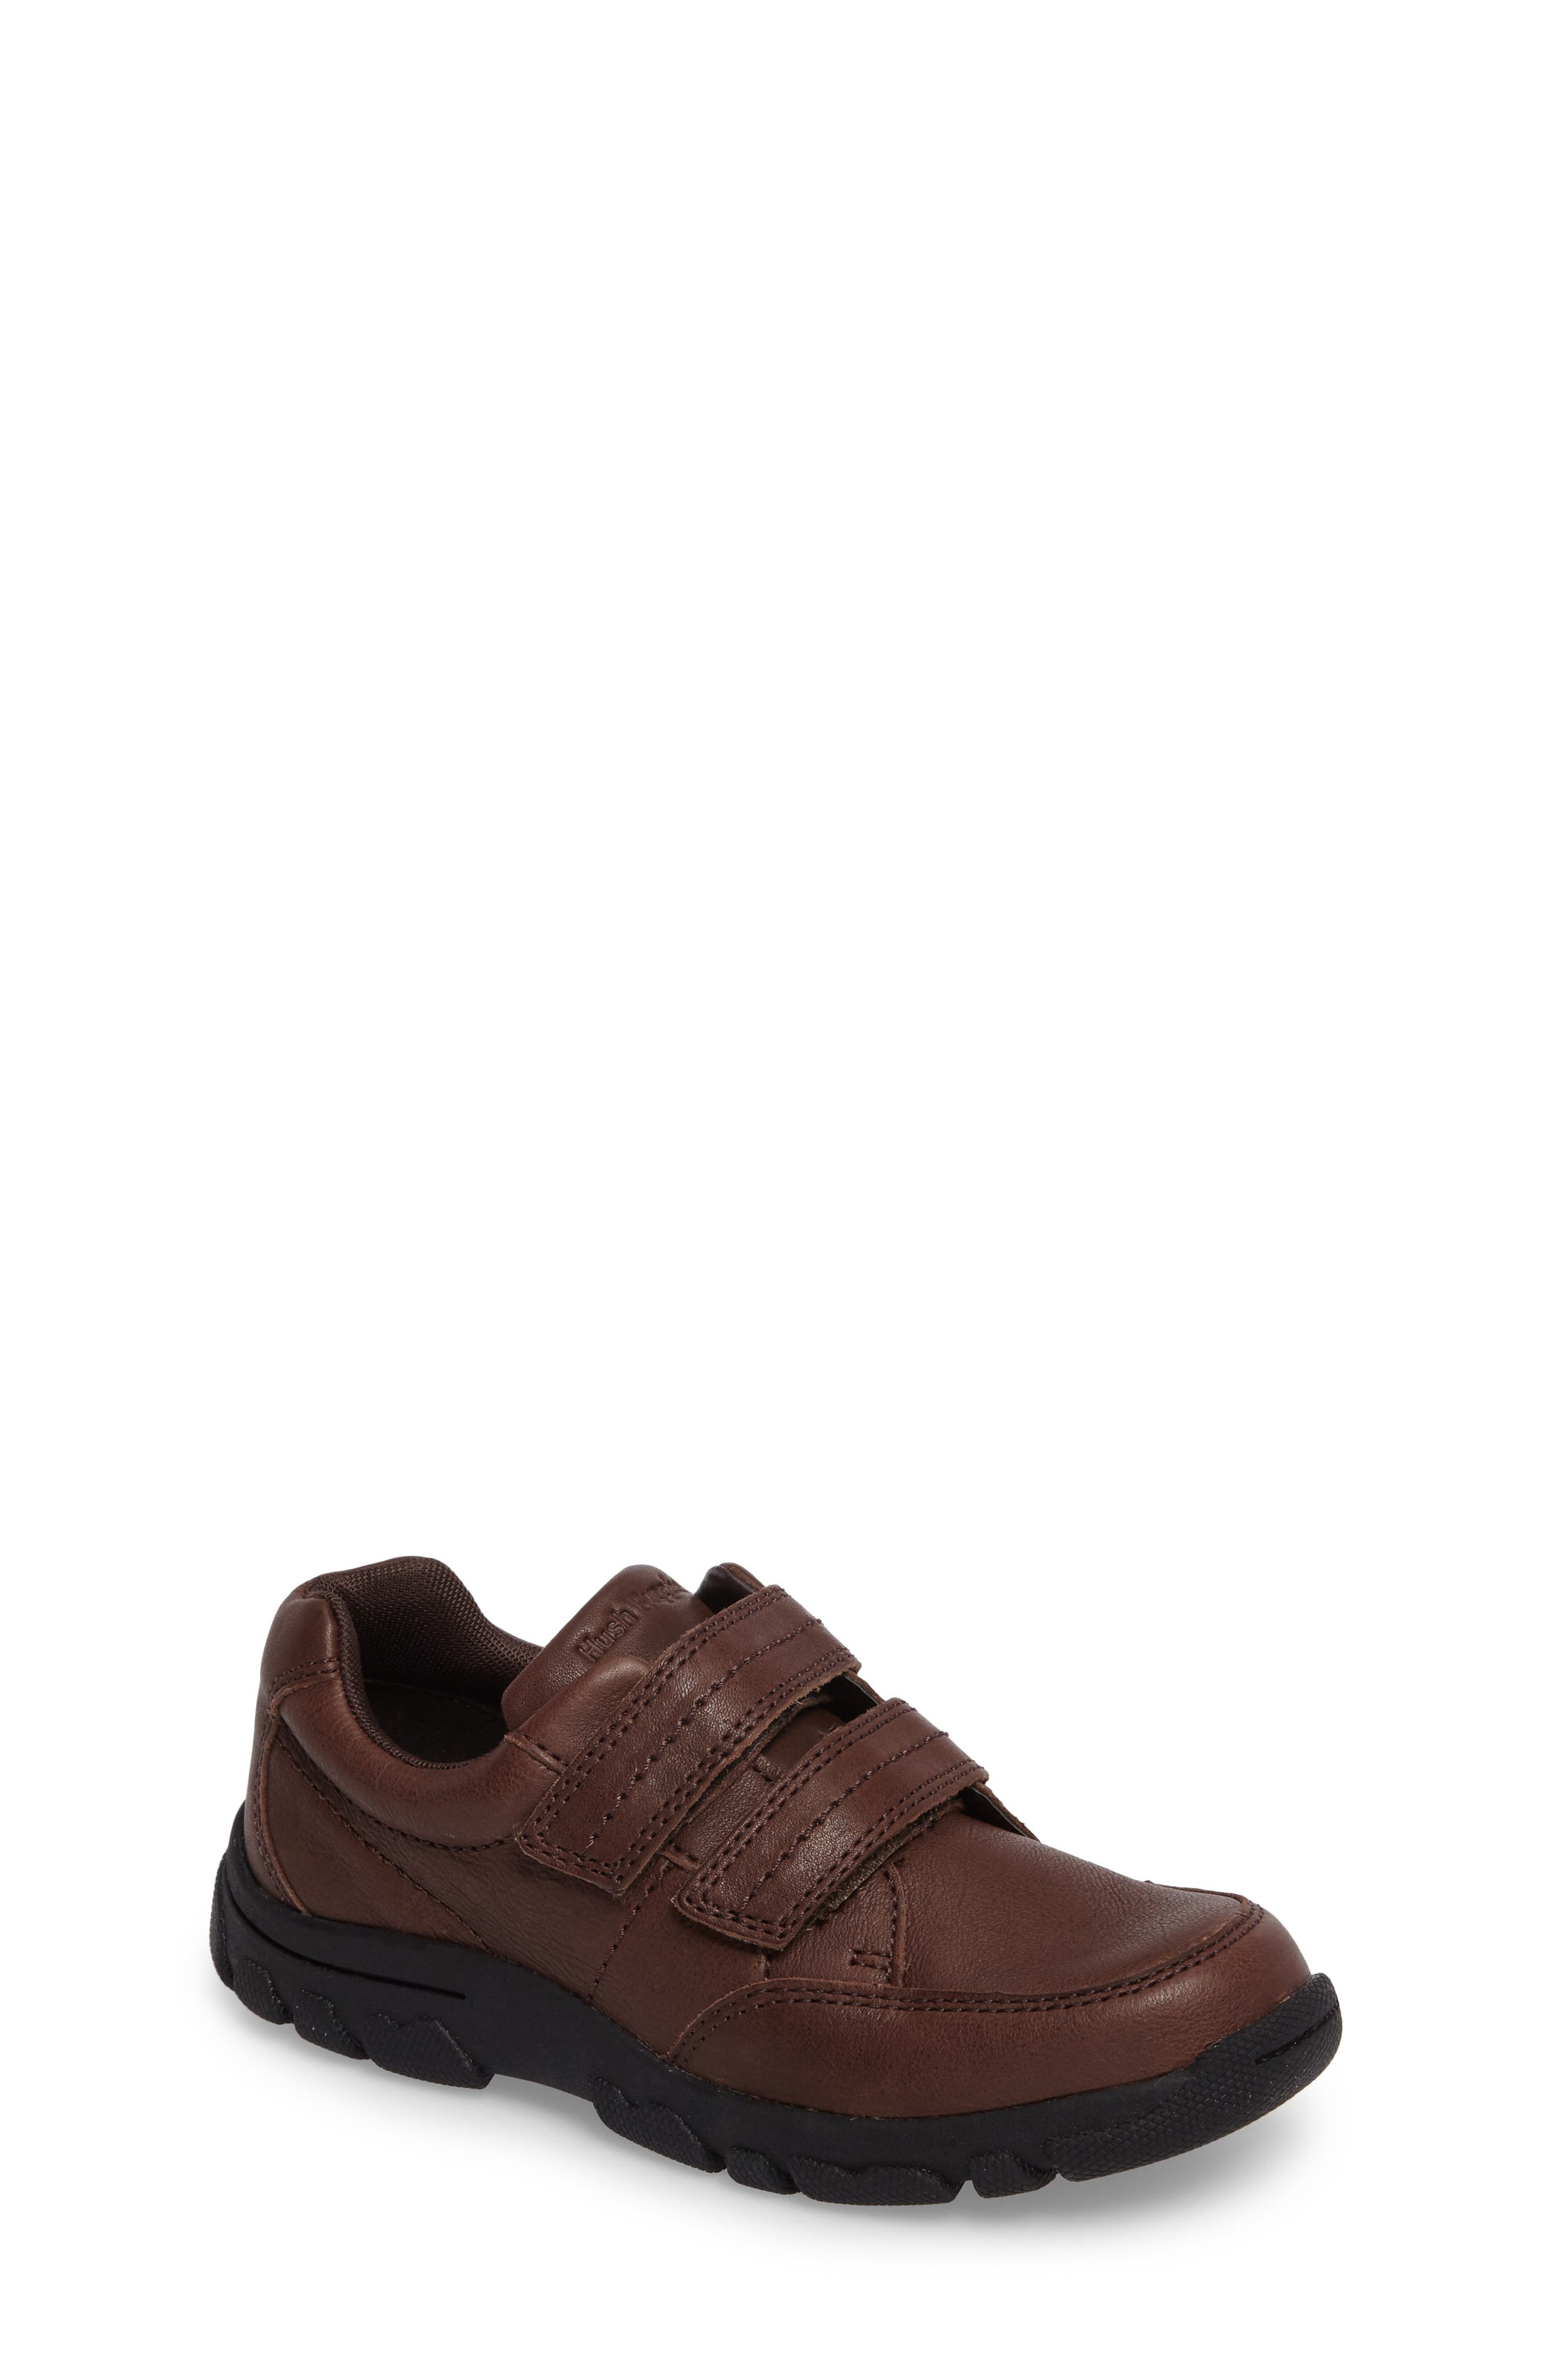 Jace Dress Sneaker,                             Main thumbnail 1, color,                             Brown Leather